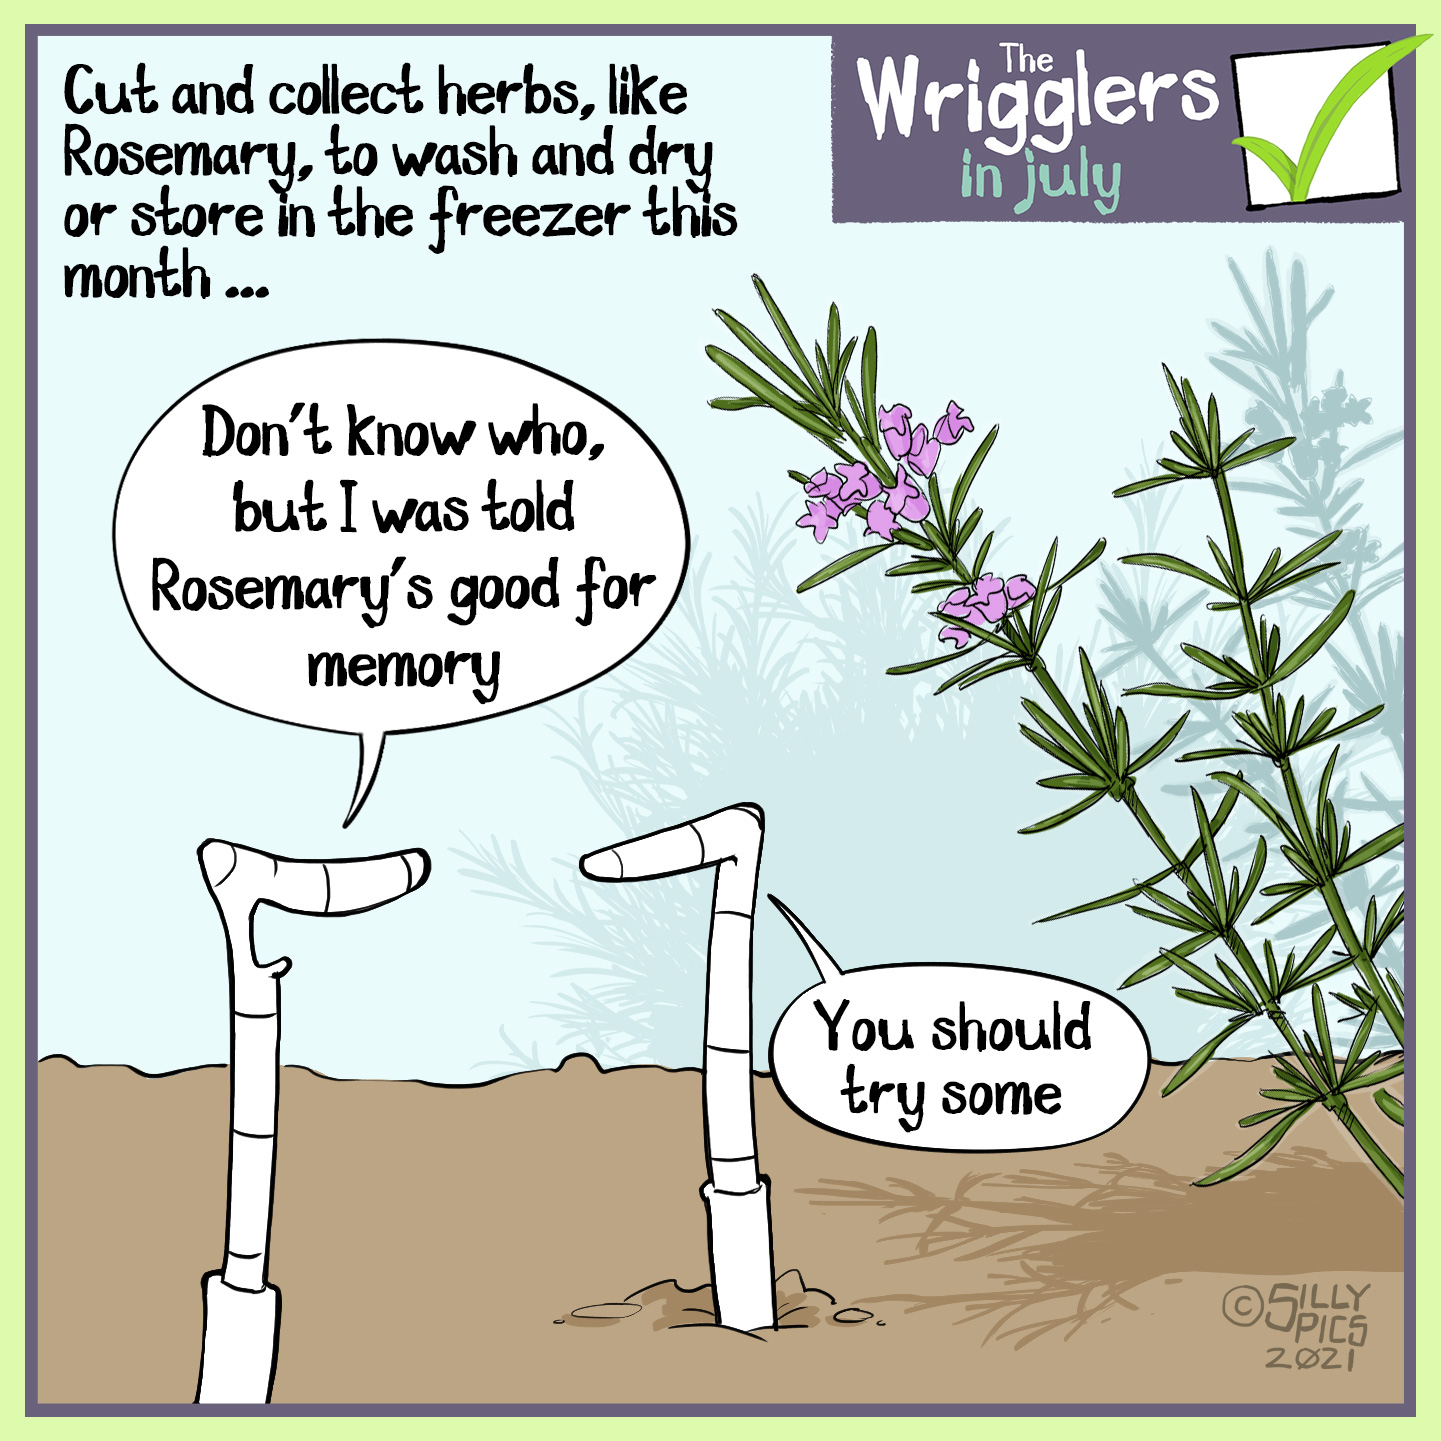 """Cut and collect herbs, like Rosemary, to wash and dry, store in the freezer this month … Two worms are looking at a rosemary plant, one worm says, """" Don't know who, but I was told Rosemary's good for memory…"""" The other worm says, """"You should try some"""""""